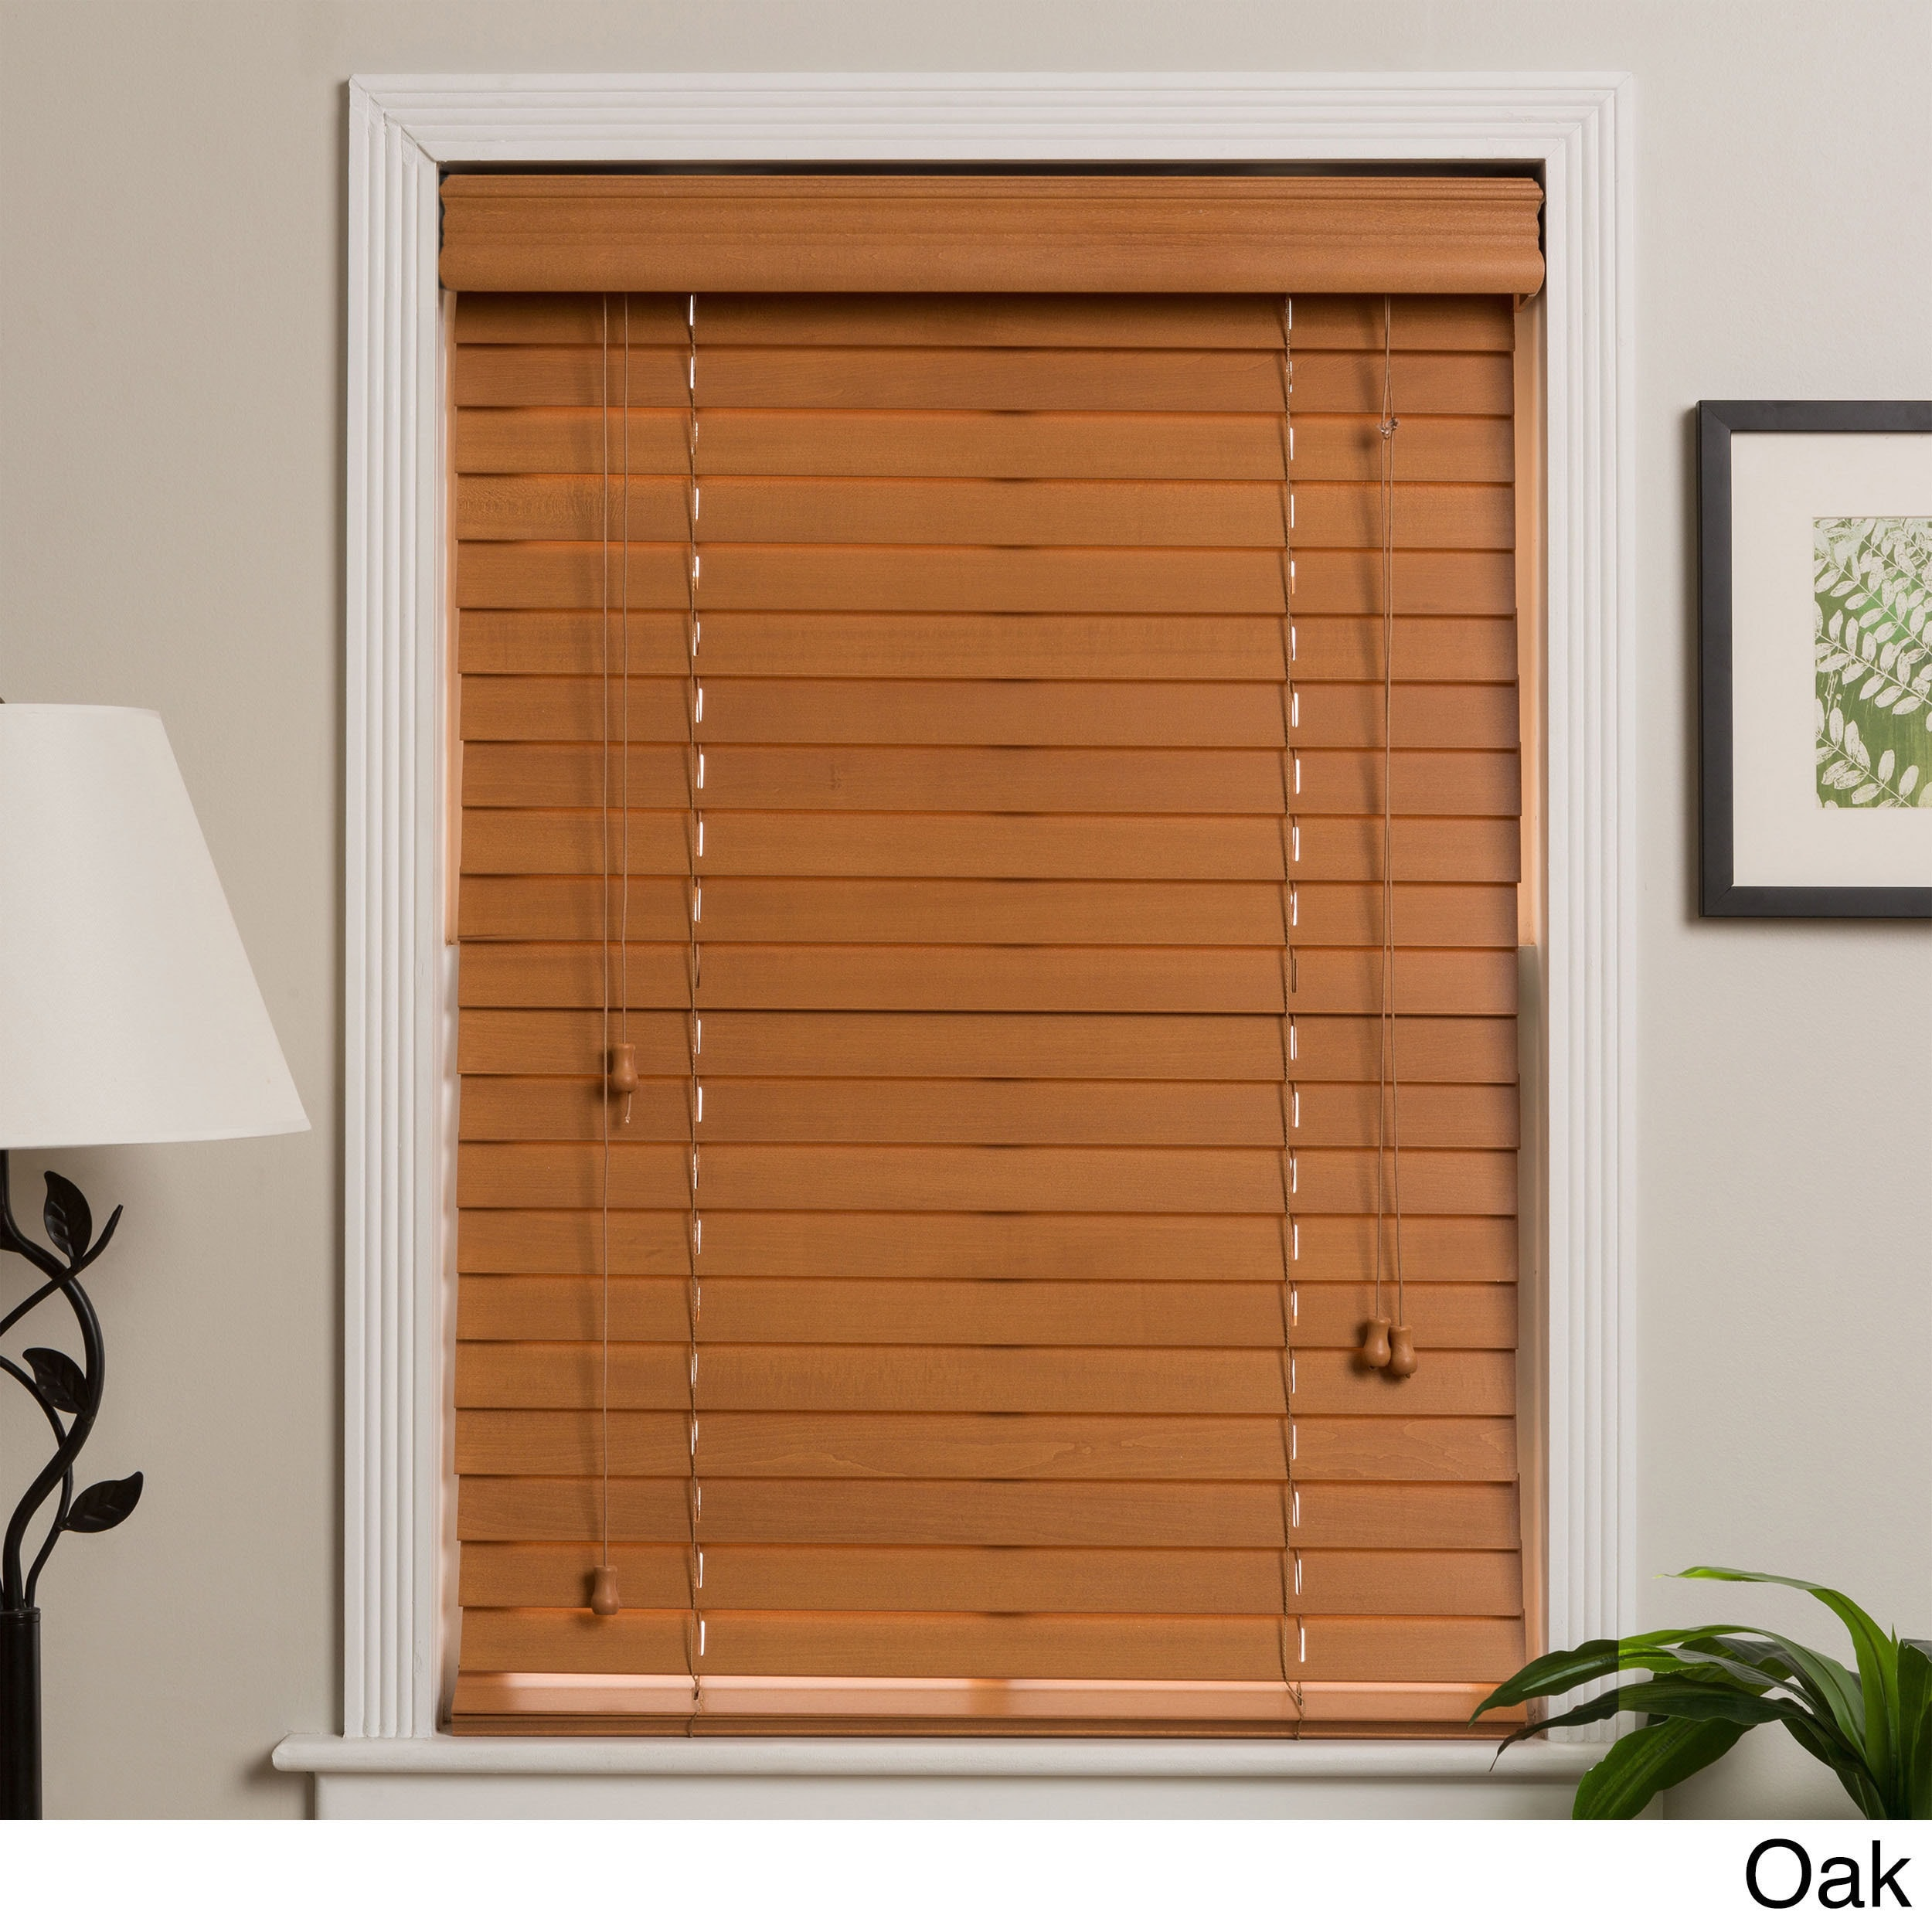 h coverings venetian lutron so picture blinds mice hi aluminum products window blind from